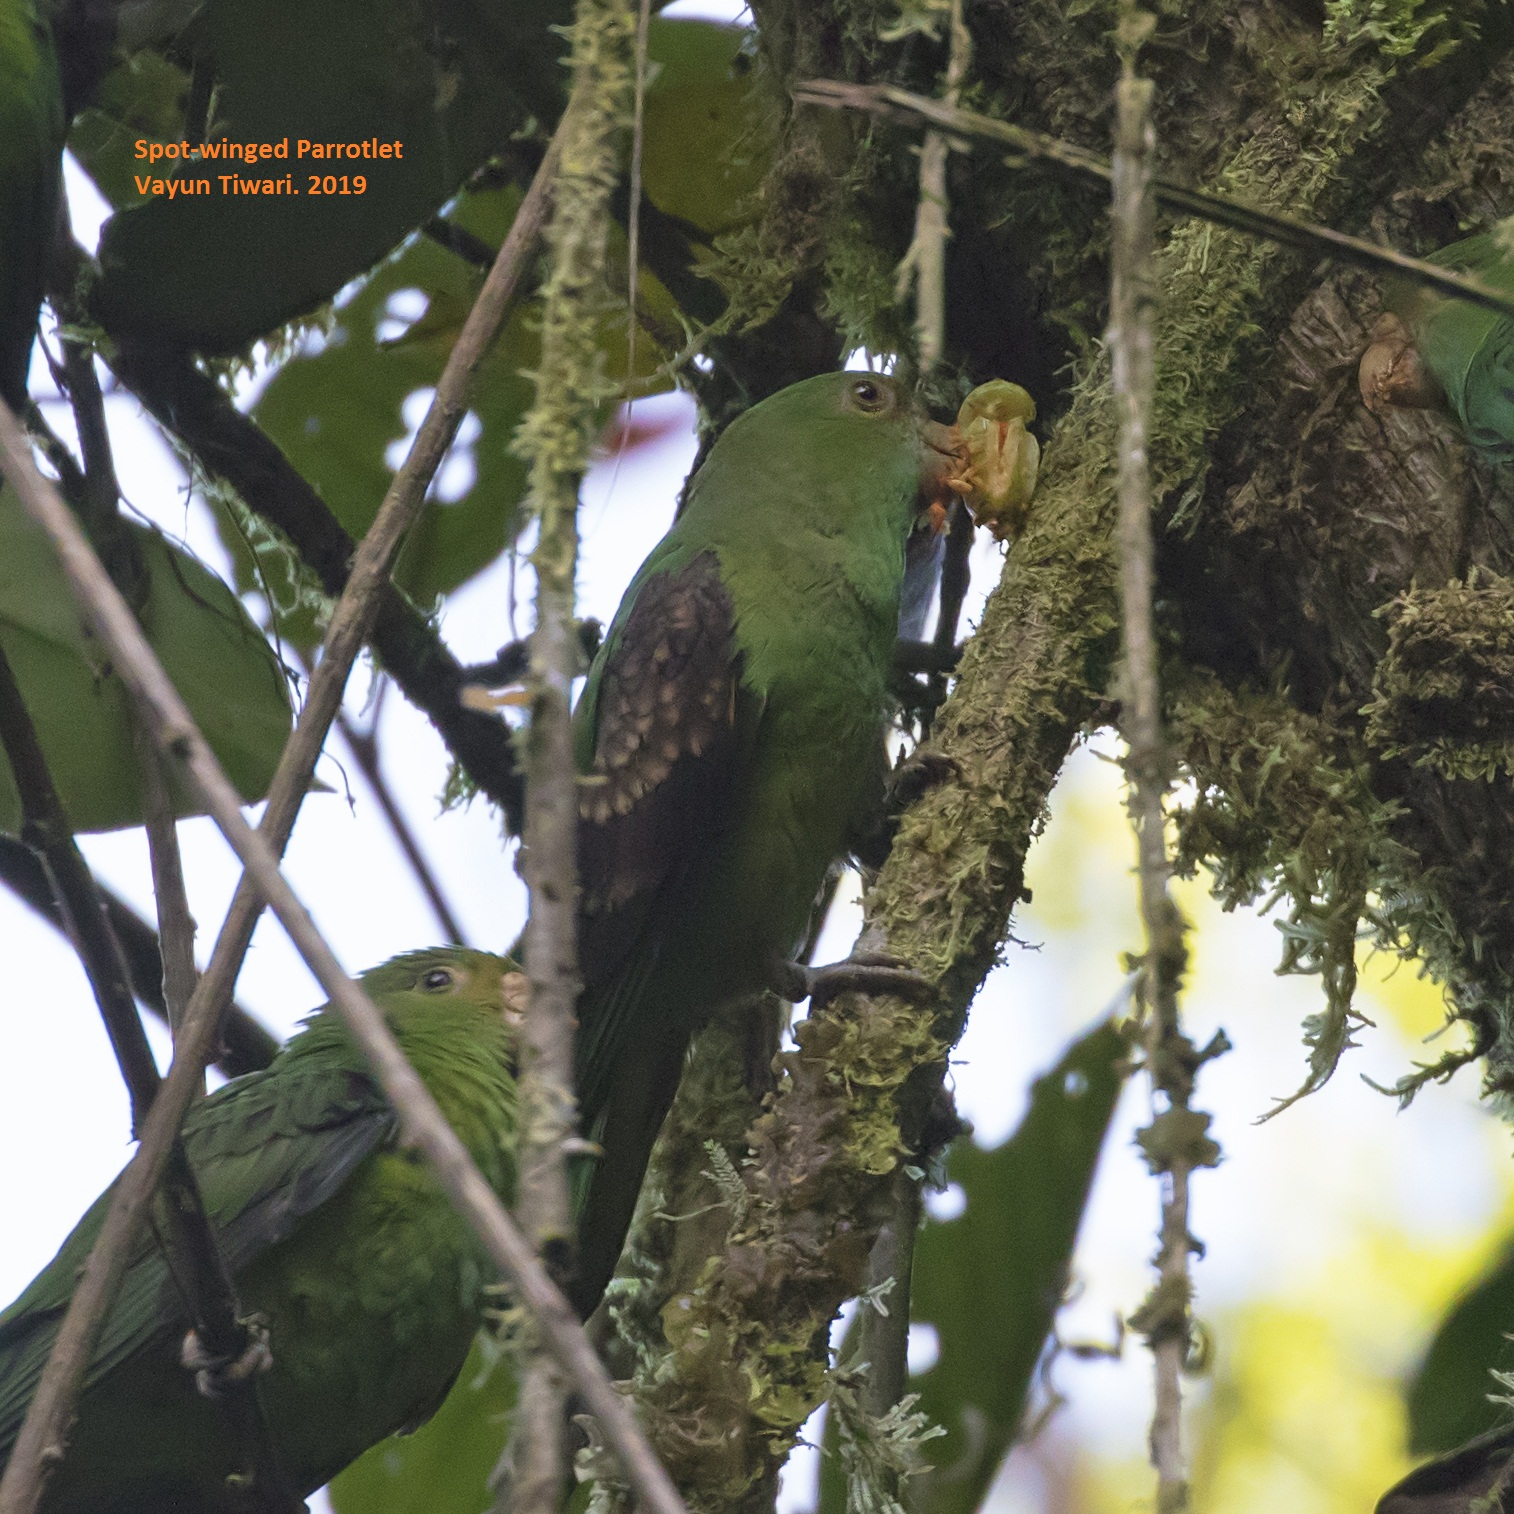 Spot-winged Parrotlet Ecuador